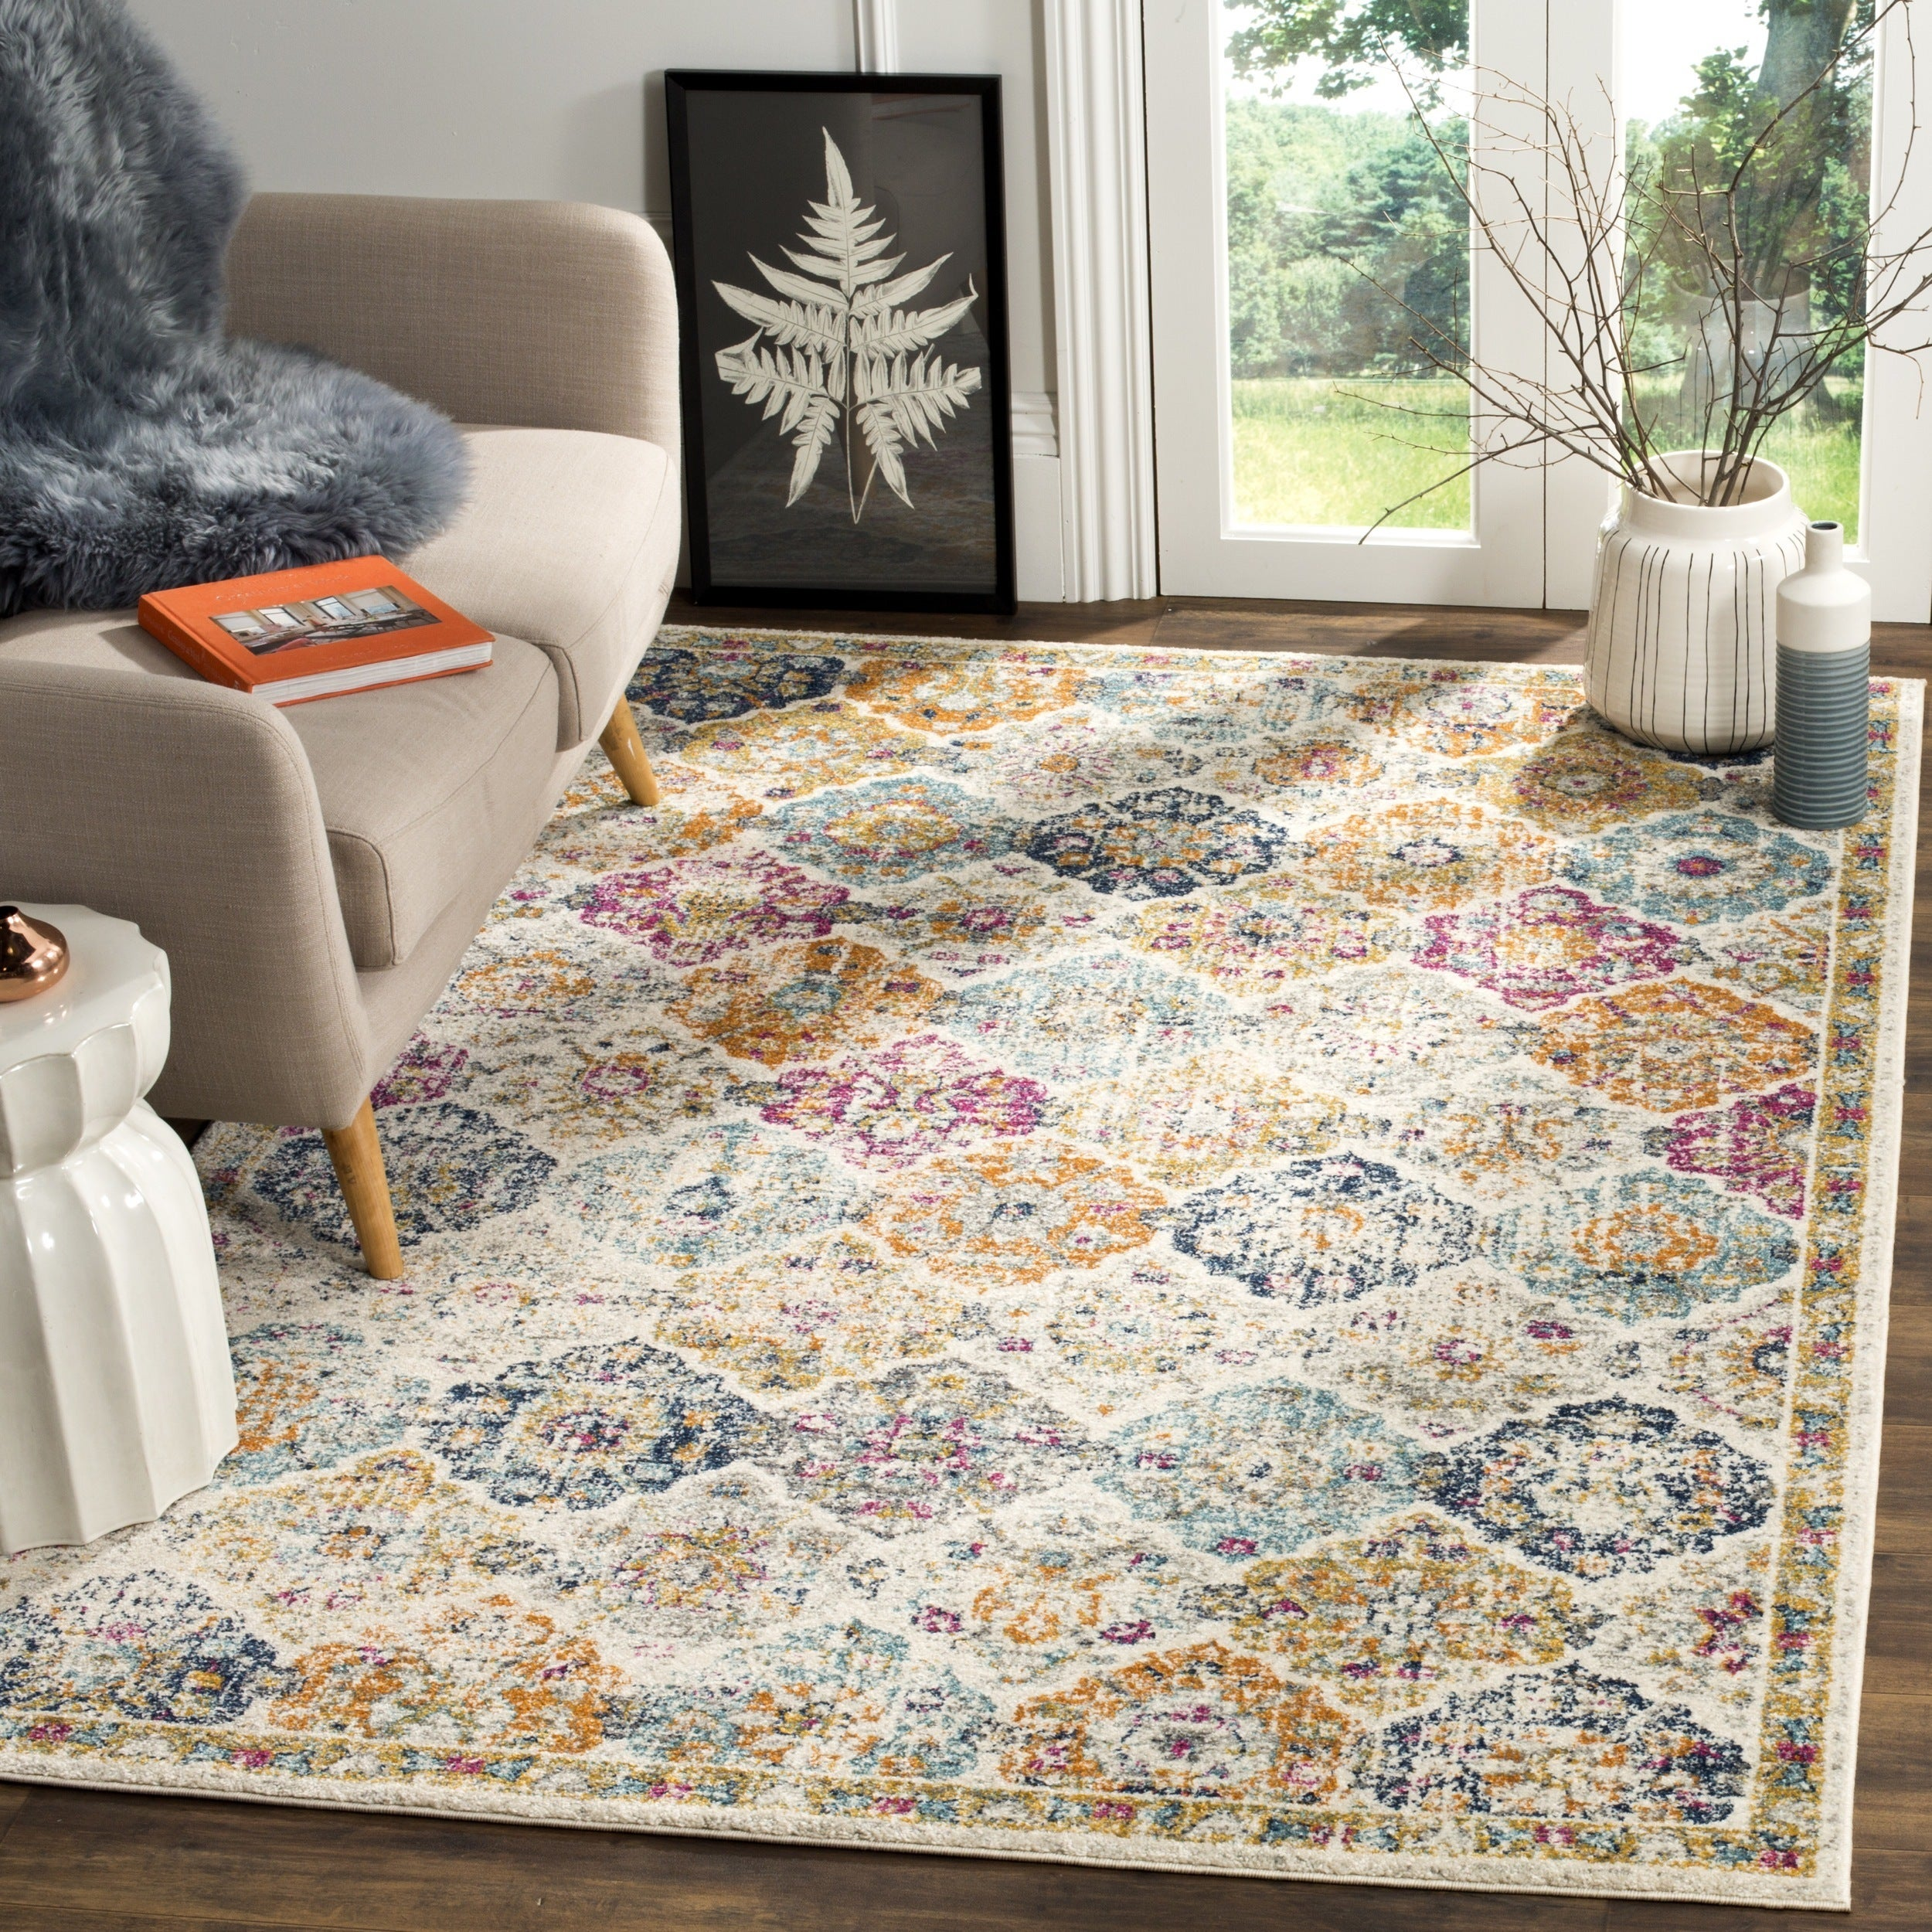 Safavieh Madison Bohemian Vintage Cream Multi Distressed Rug 9 X 12 On Free Shipping Today 12659878